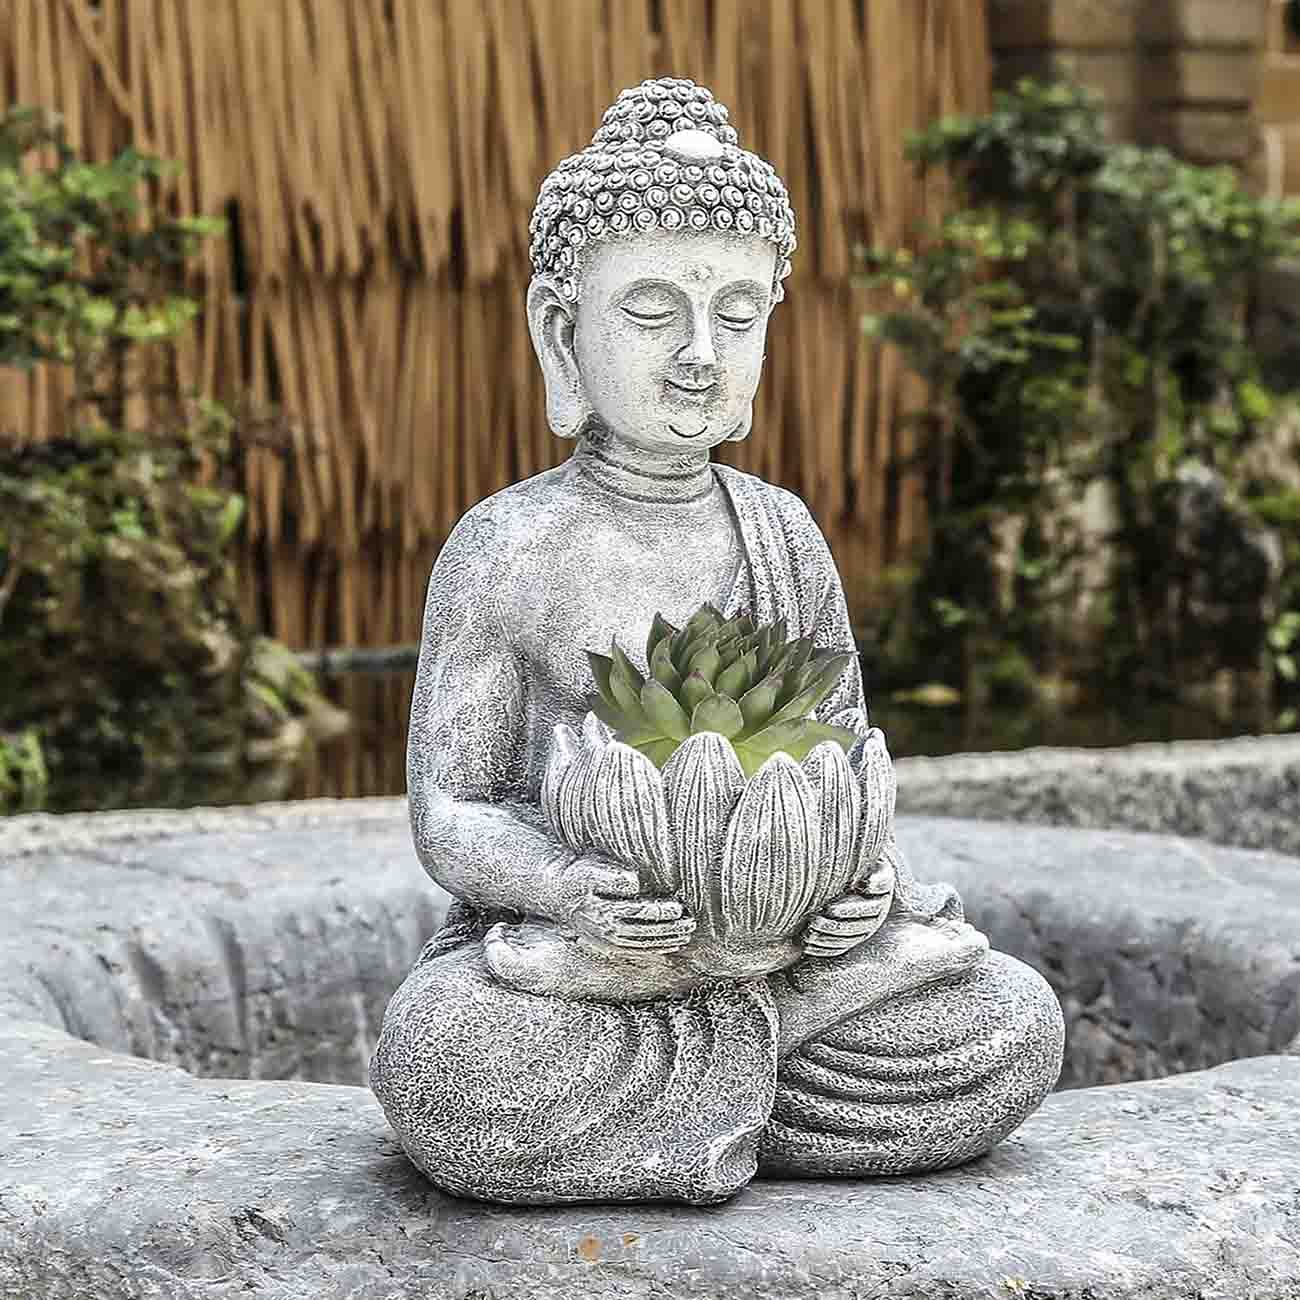 Lotus Buddha Statues, Resin Buddha Figurines Zen Plant Holder, for Succulent Flower Cactus Indoor Outdoor Spring Decorations for Patio Yard Lawn Porch, Ornament Gift Rustic Gray Finish